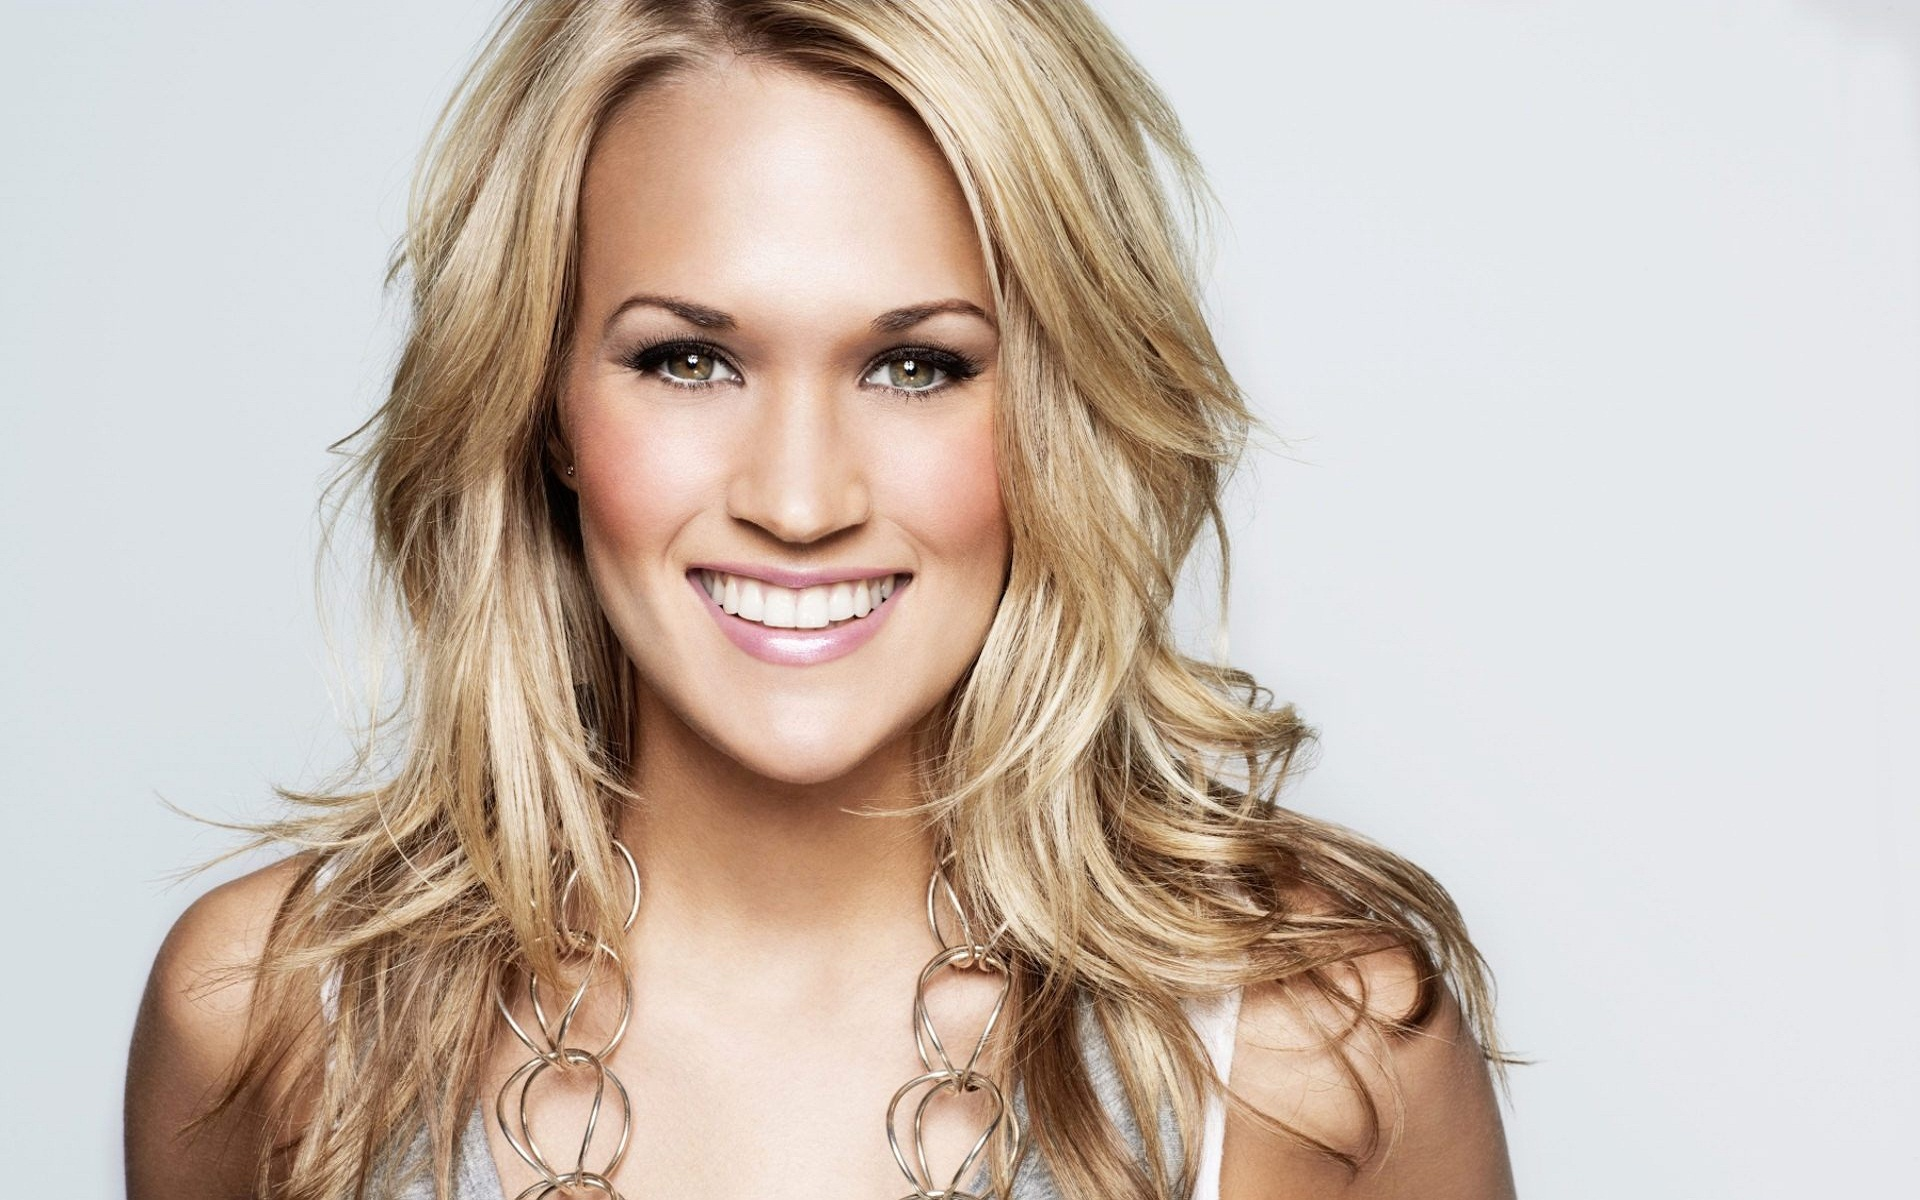 Carrie Underwood Nose Job